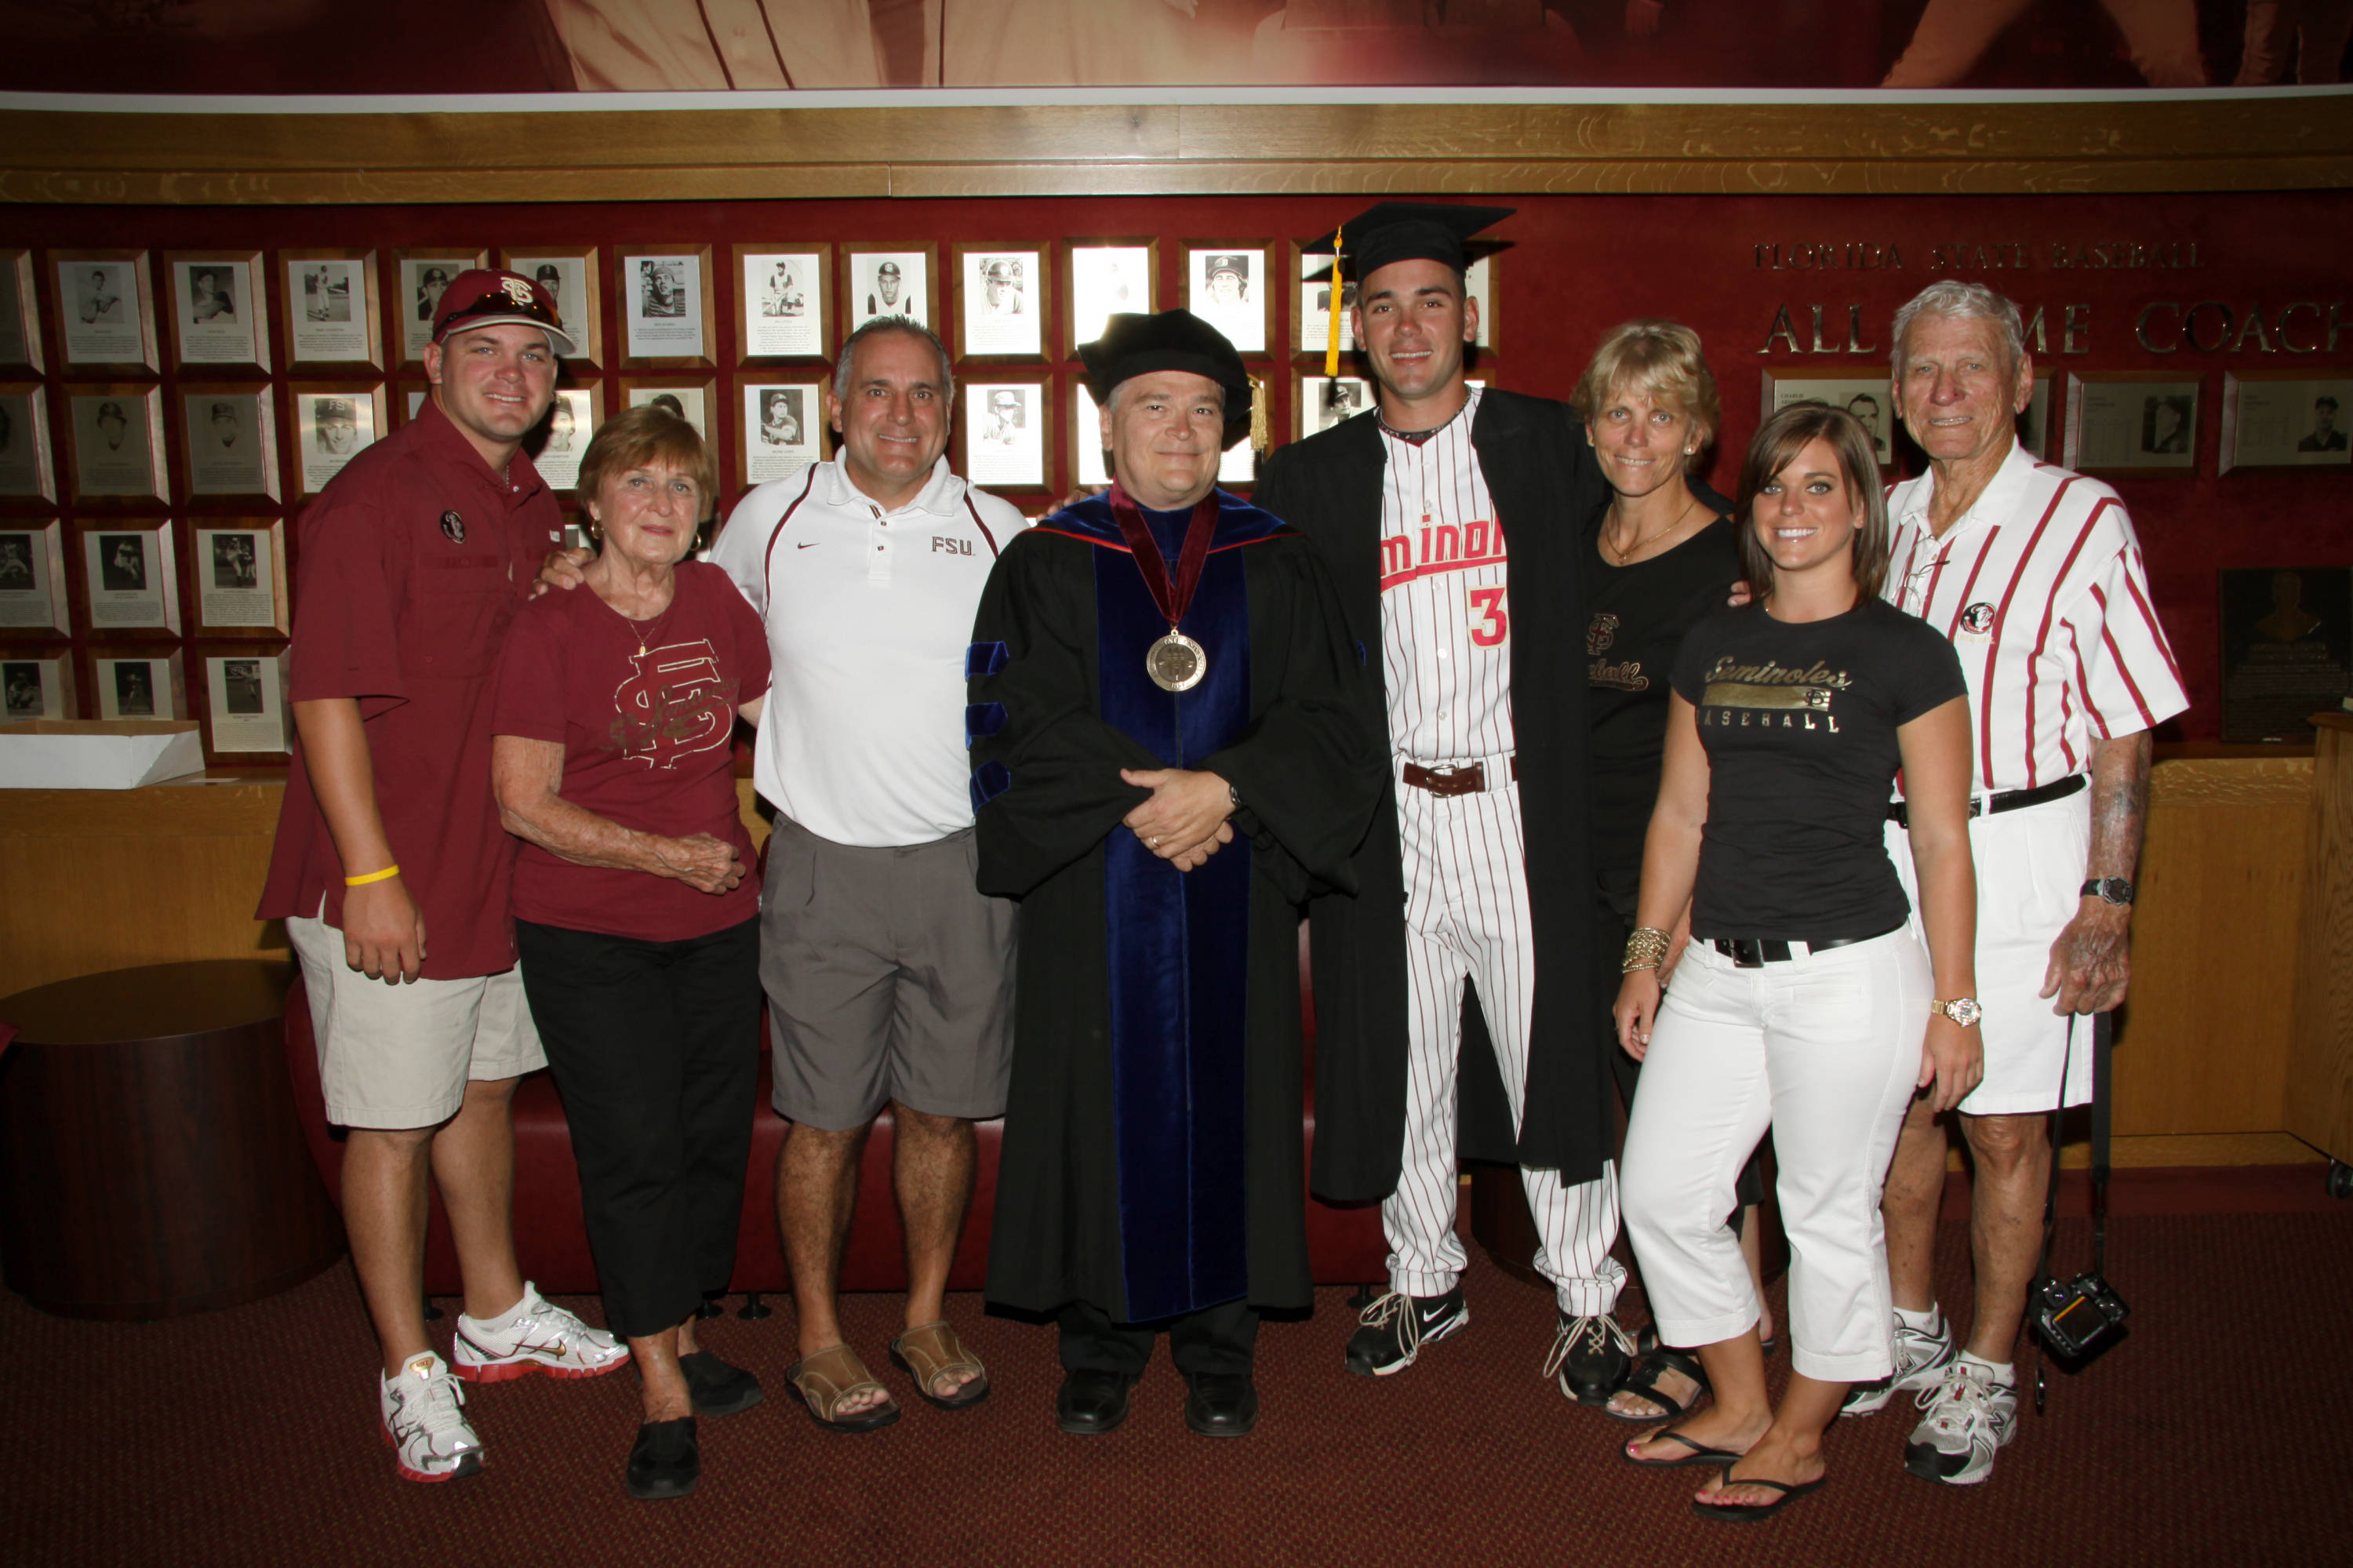 2011 Spring Graduation Ceremony held at Dick Howser Stadium to honor the graduating baseball seniors. Robby Scott (36) with family and President Barron